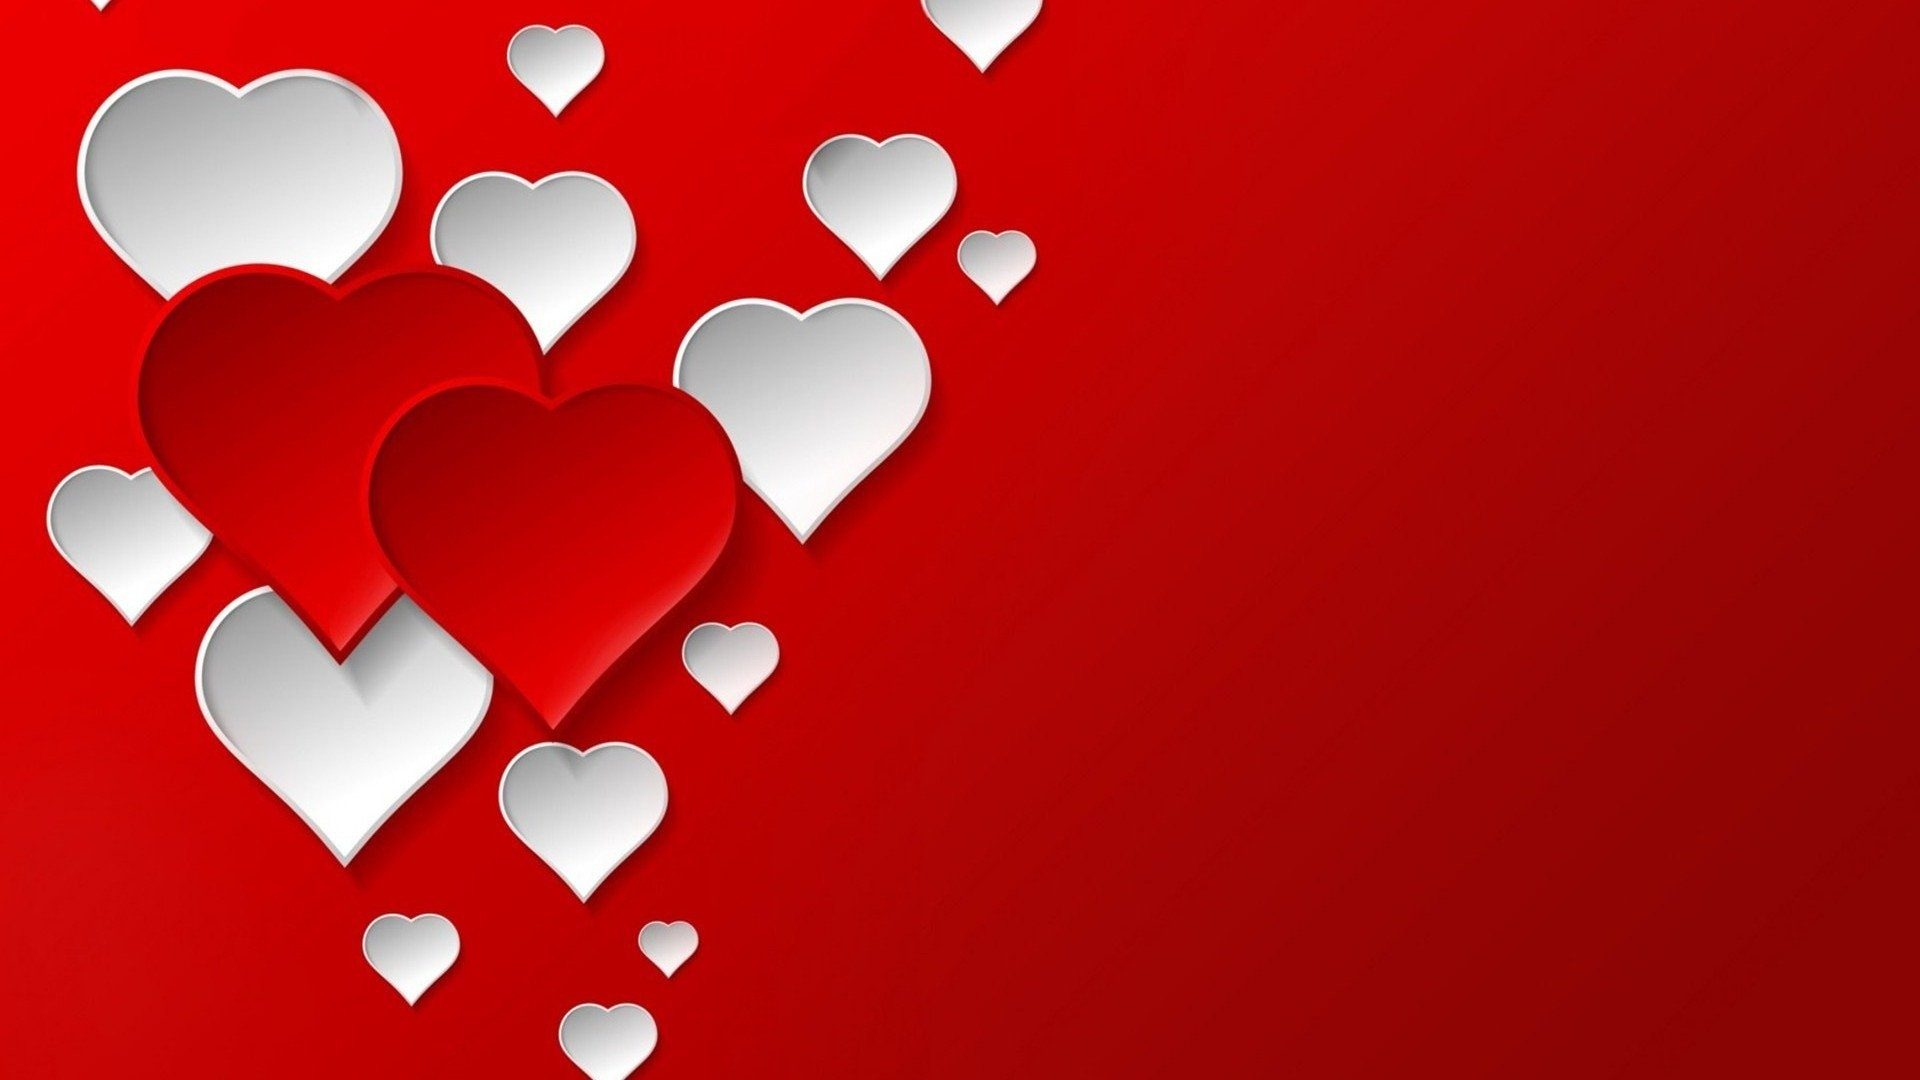 VALENTINES DAY mood love holiday valentine heart wallpaper | .